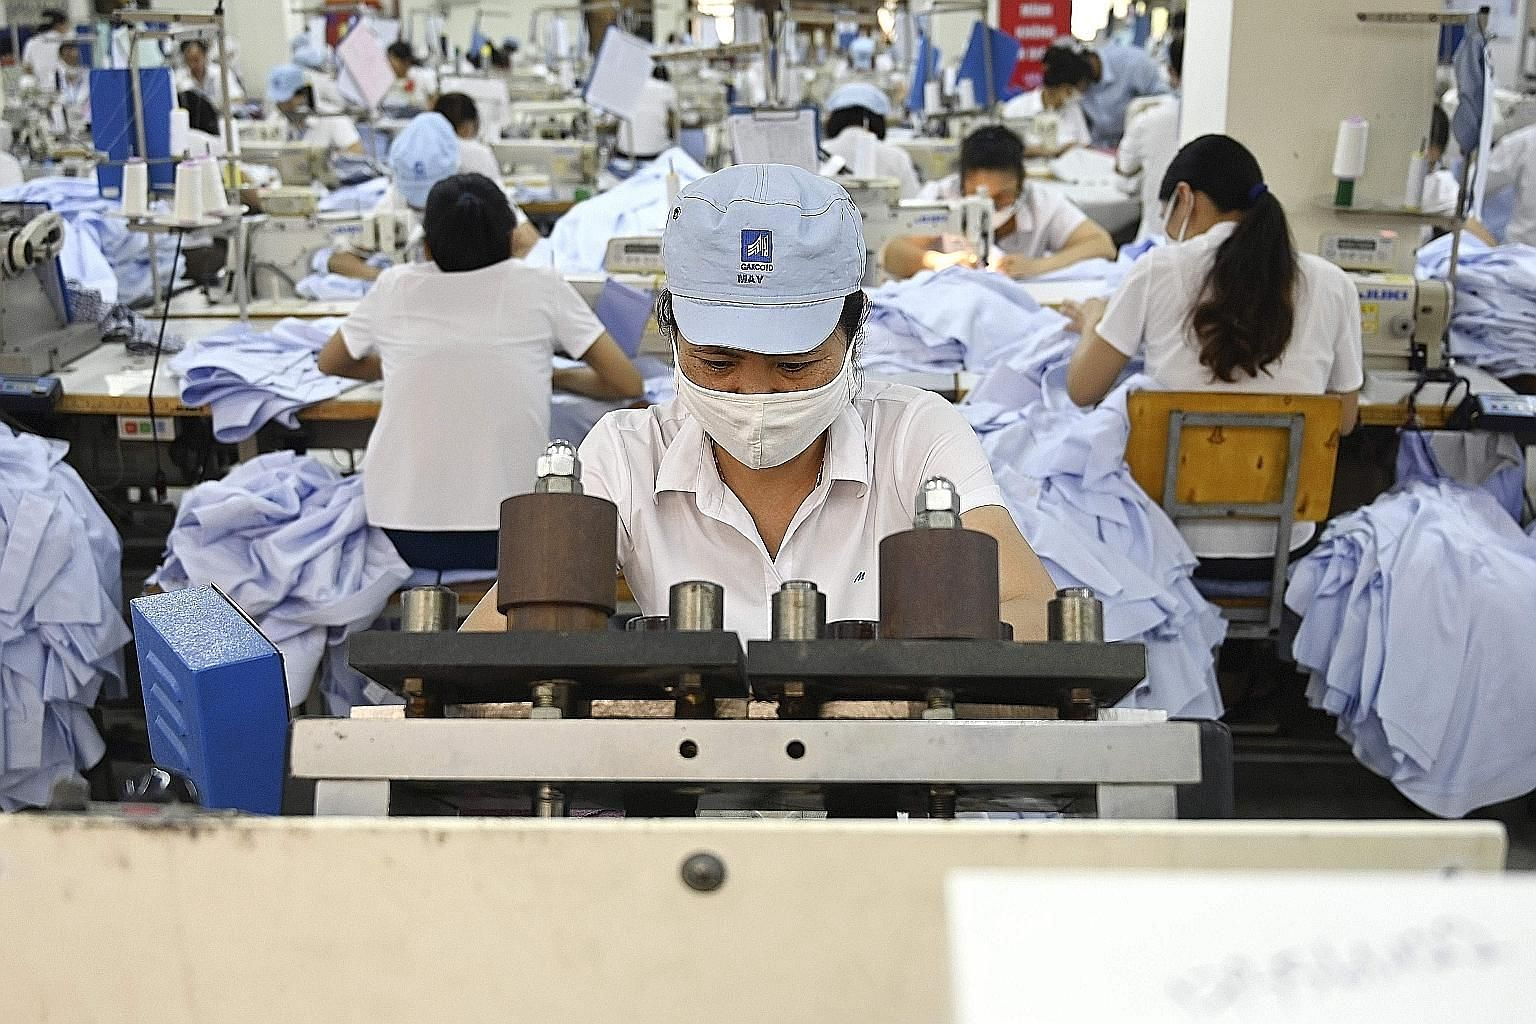 Vietnam's wages, which are among the lowest in Asean, have helped to draw companies and factories.